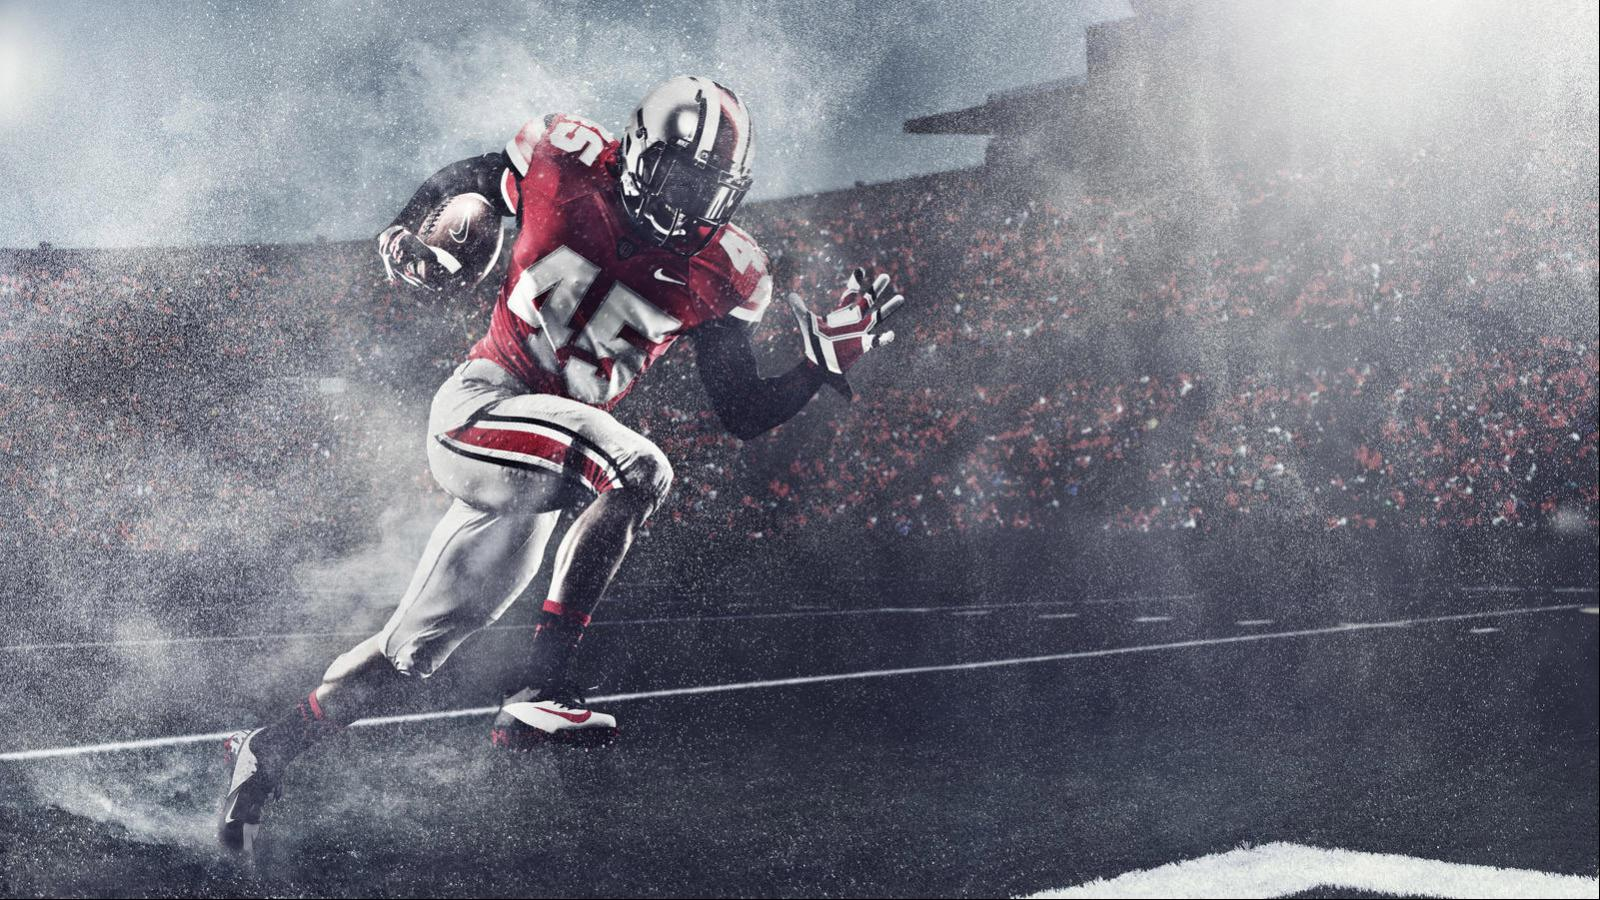 Ohio State Football Team Wallpaper with New Uniform HD Wallpapers 1600x900